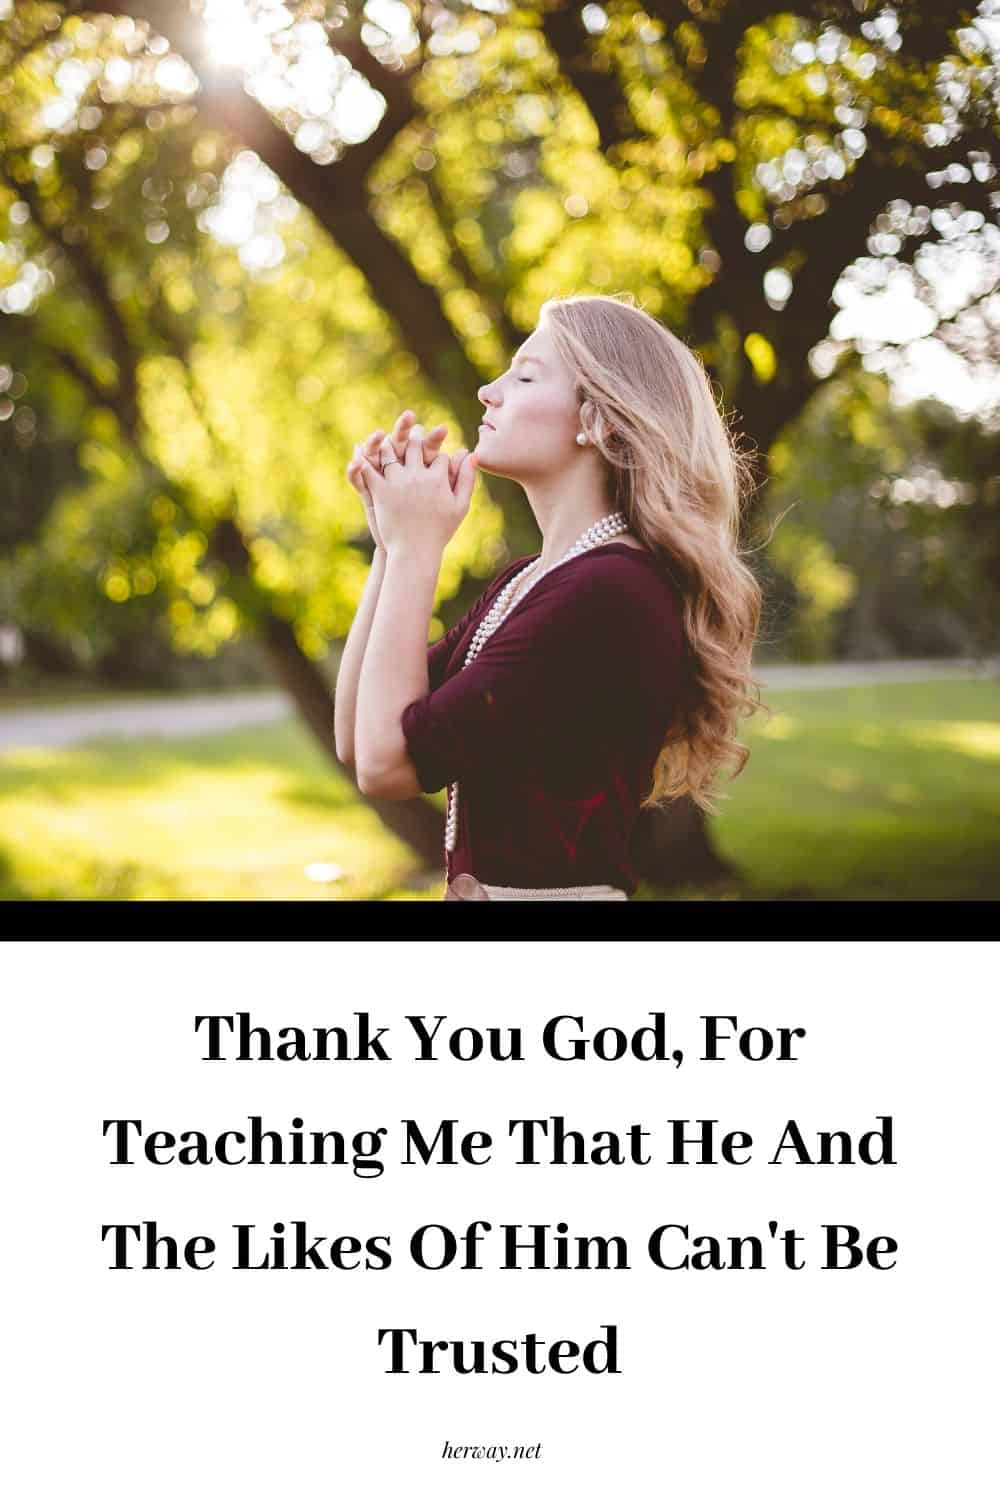 Thank You God, For Teaching Me That He And The Likes Of Him Can't Be Trusted